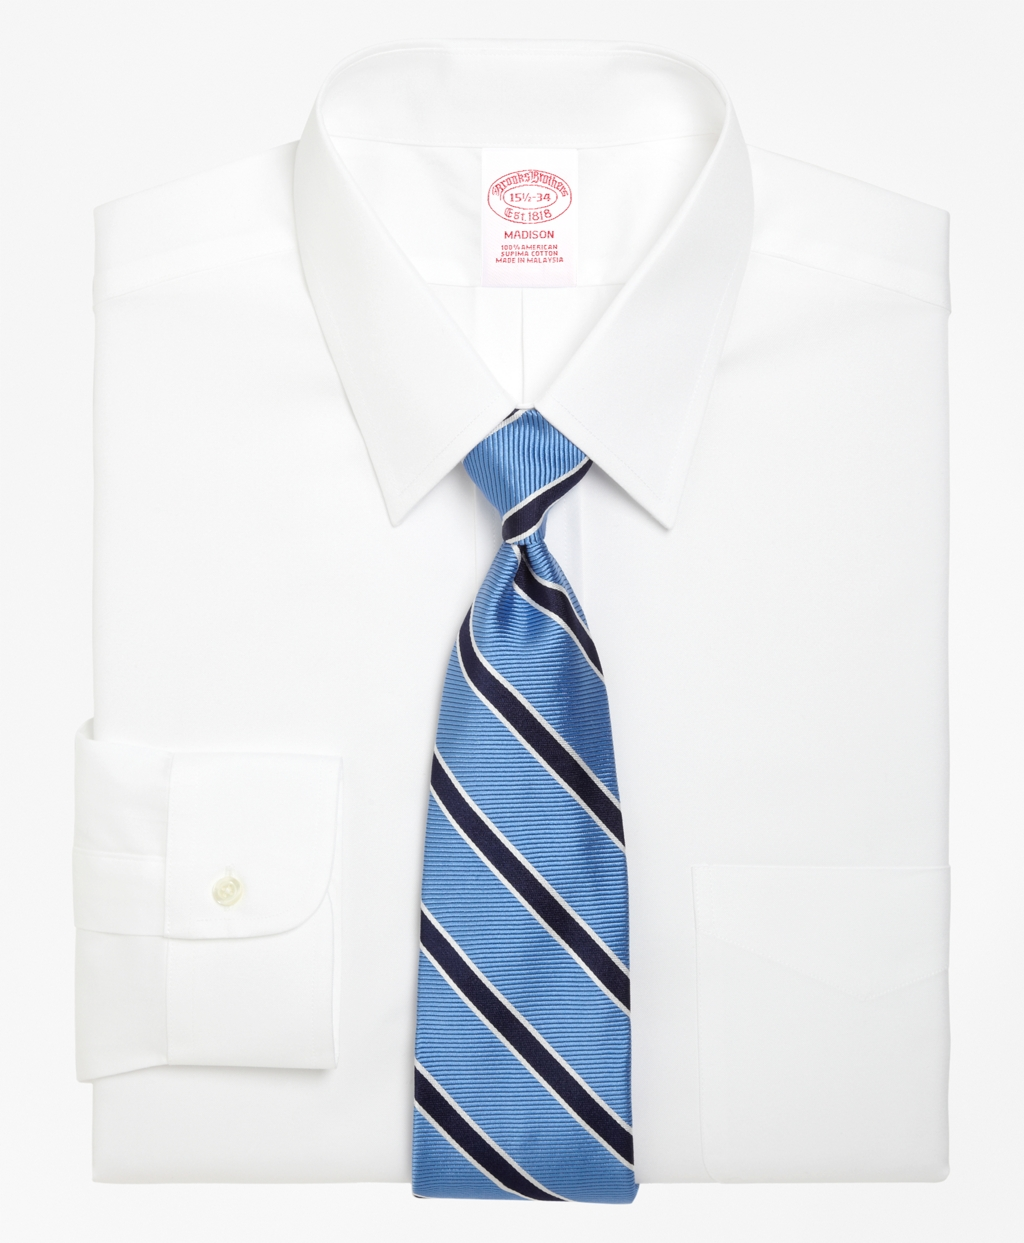 Brooksbrothers Madison Relaxed-Fit Dress Shirt, Forward Point Collar